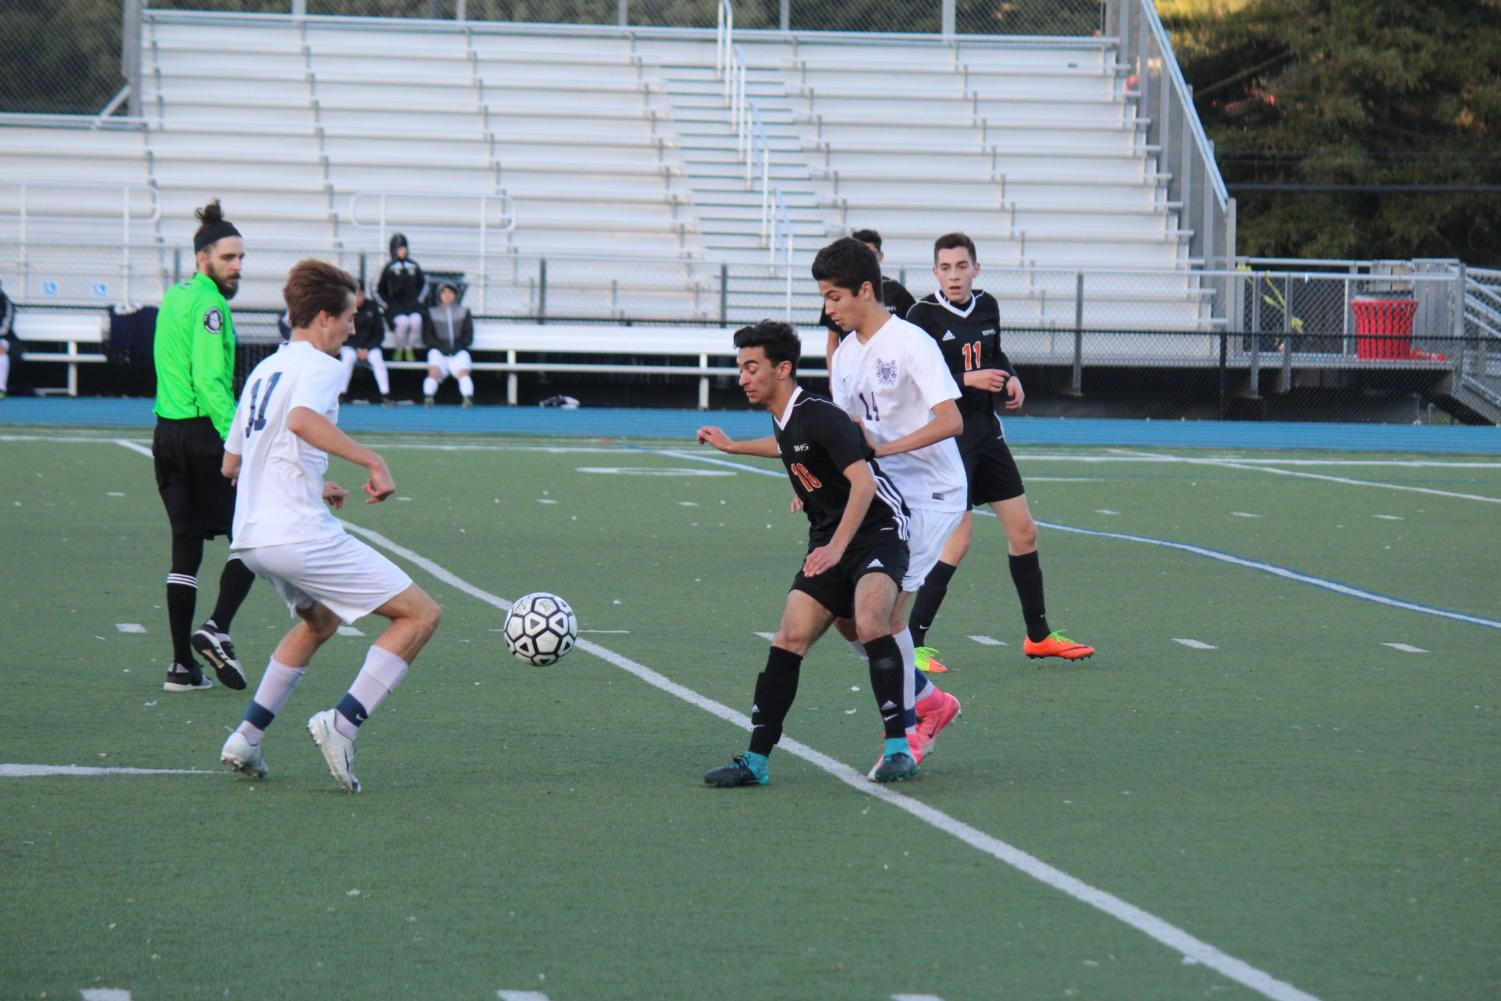 Defender Antonio Barba steals the ball away from Woodside forward.